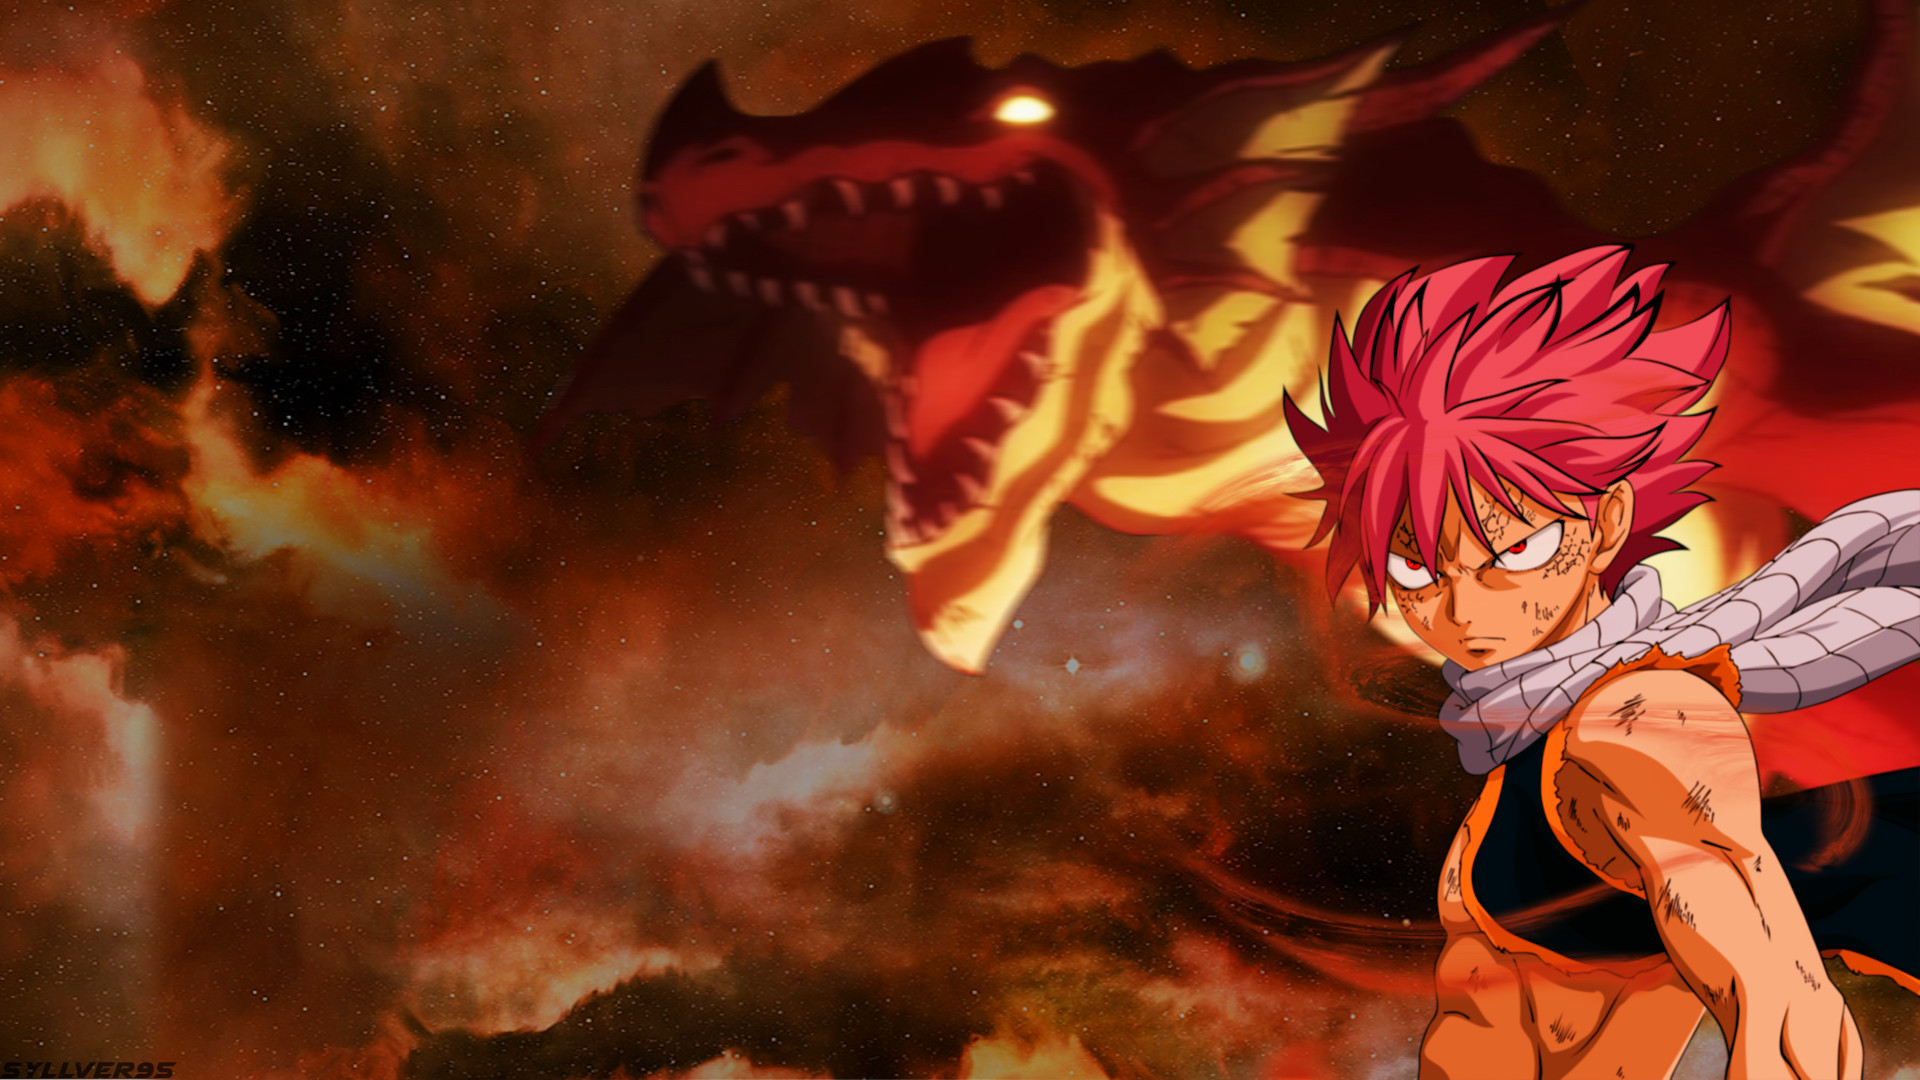 1920x1080 Tags: fairy tail ...